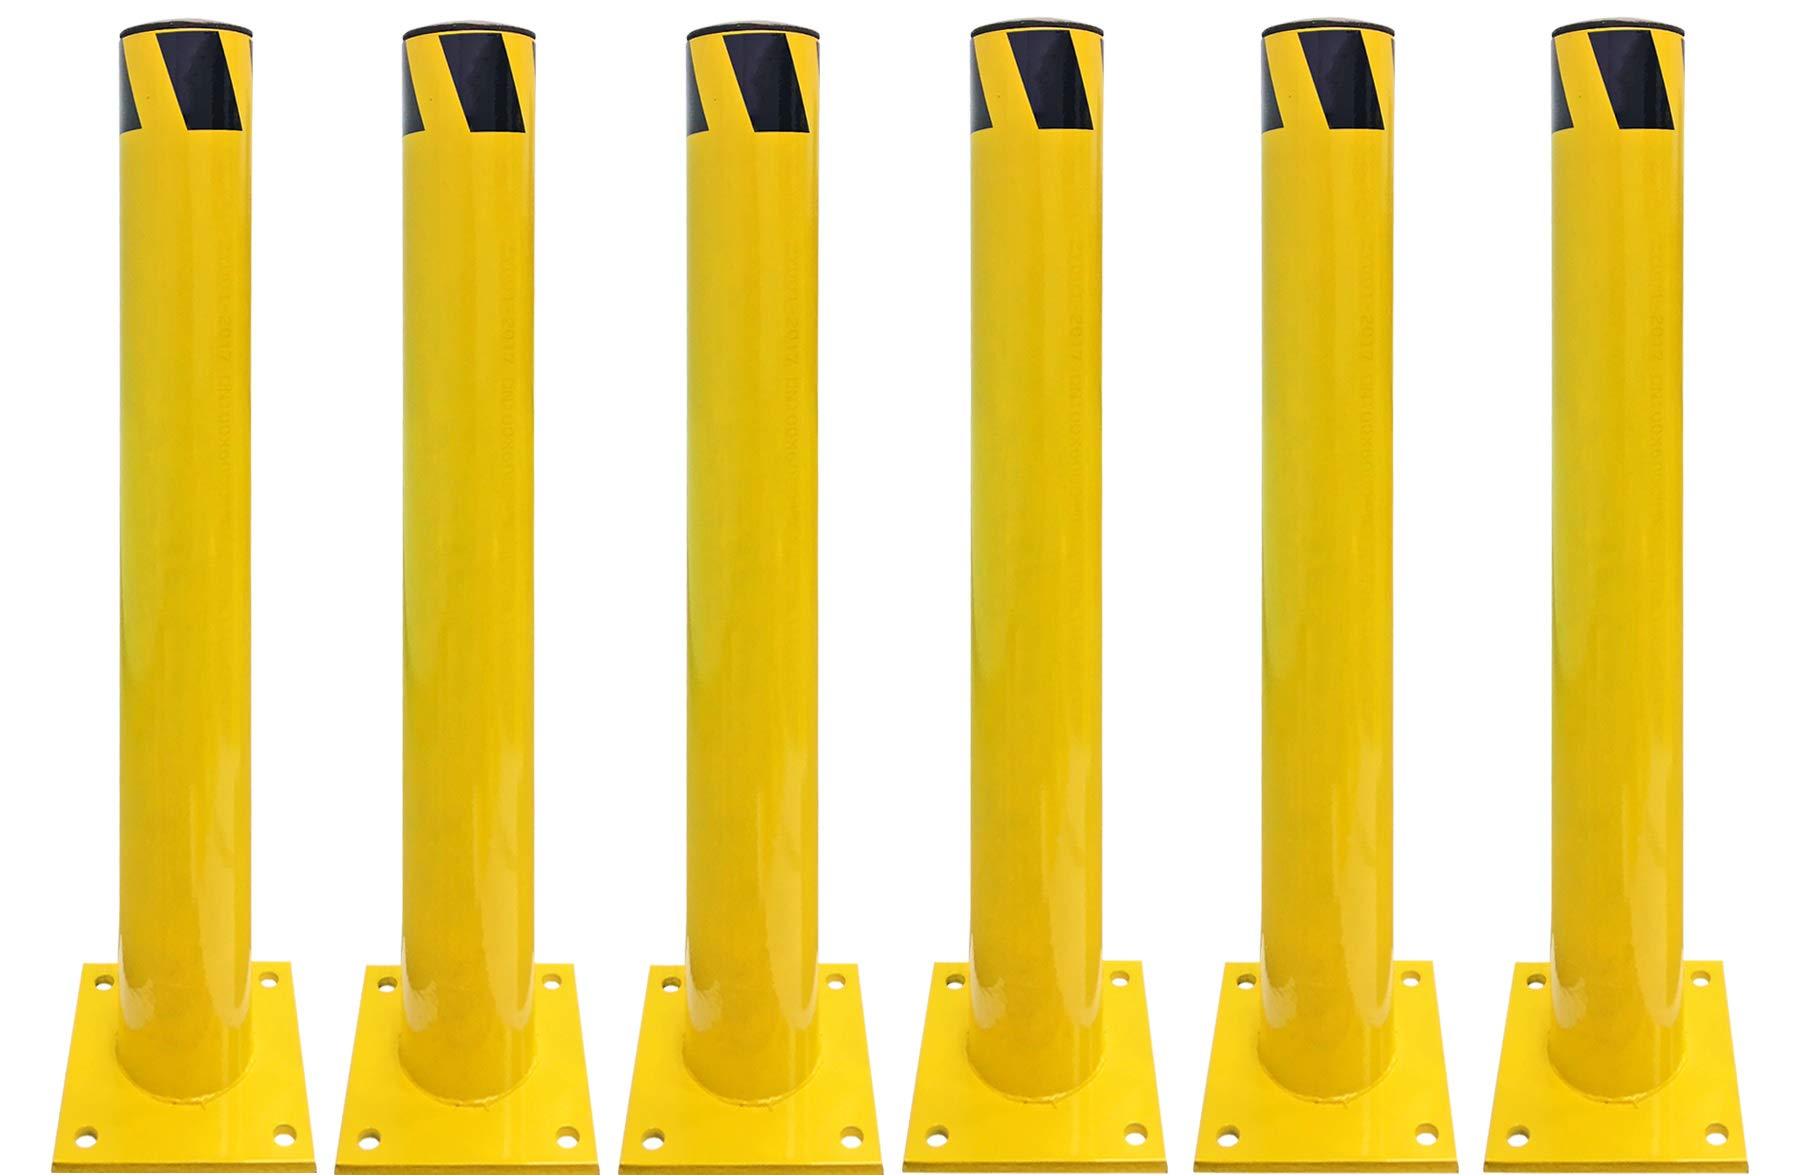 Electriduct 3 Feet Steel Pipe Safety Bollard Post Yellow/Black Stripe - Parking Lot Traffic Barrier (36'' Height - 4.5'' OD) - Pack of 6